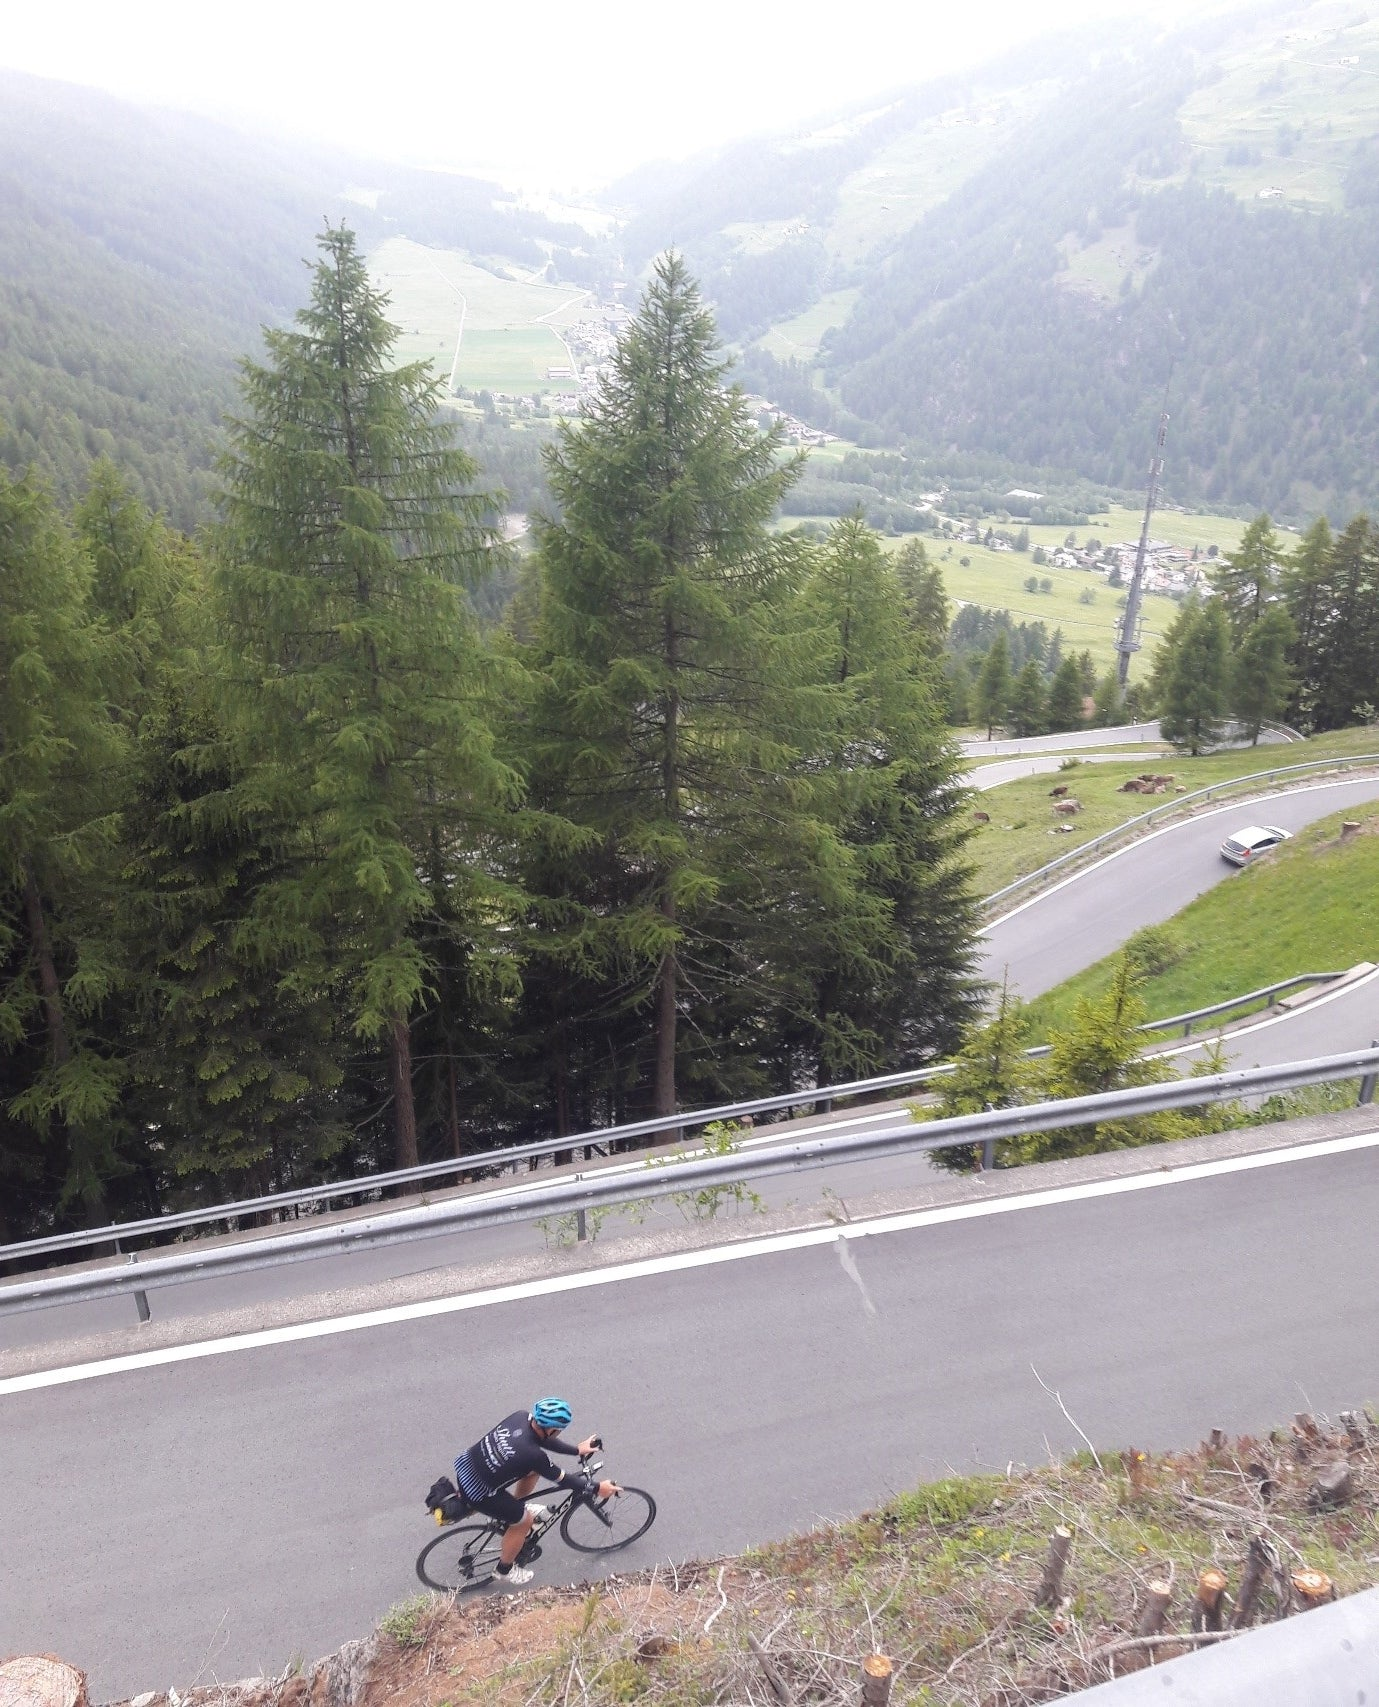 Justin on the tight hairpin section at the foot of the Umbrail pass.